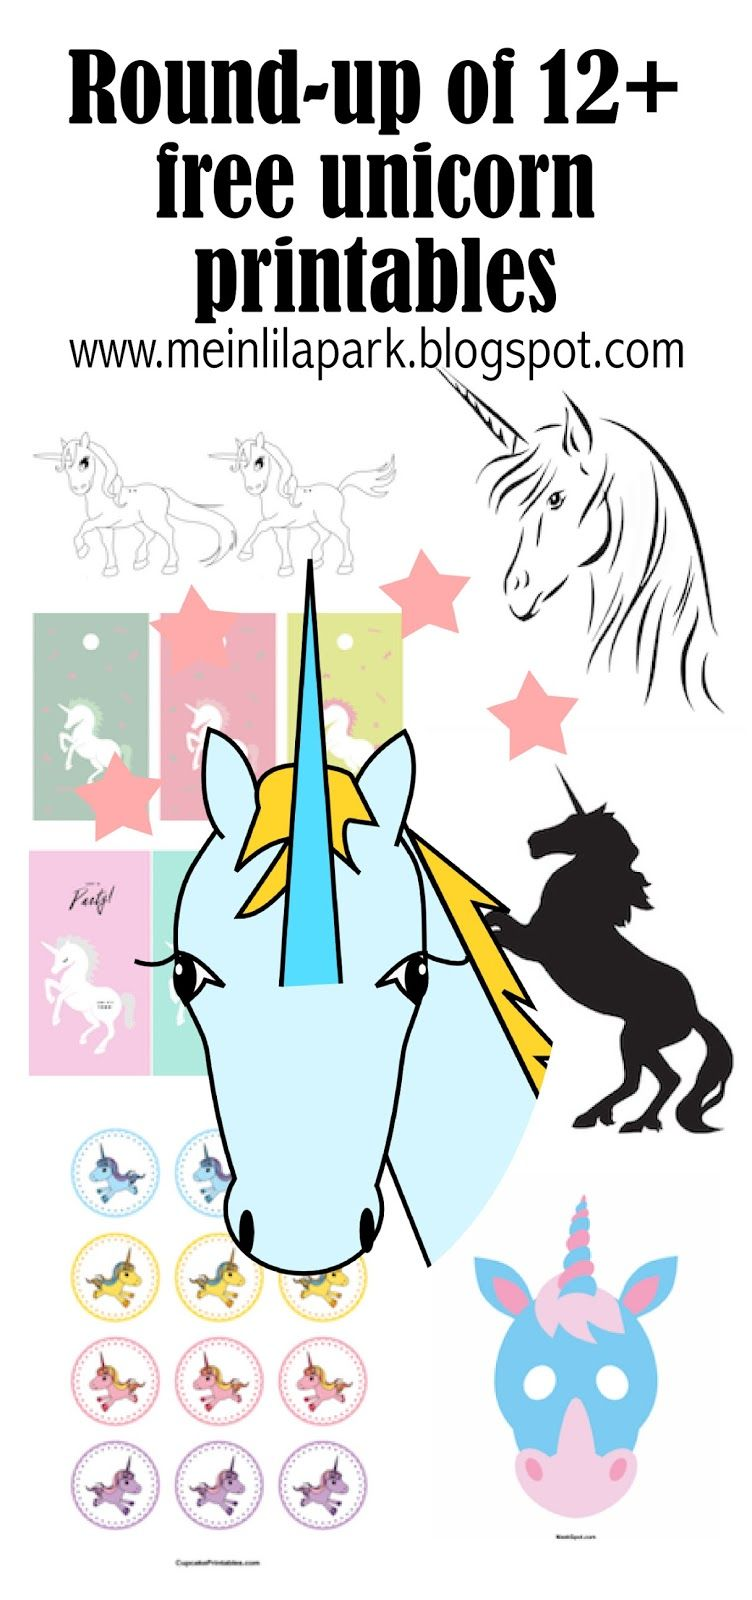 photograph relating to Free Unicorn Printable identified as 12+ totally free unicorn printables - Einhorn - spherical-up